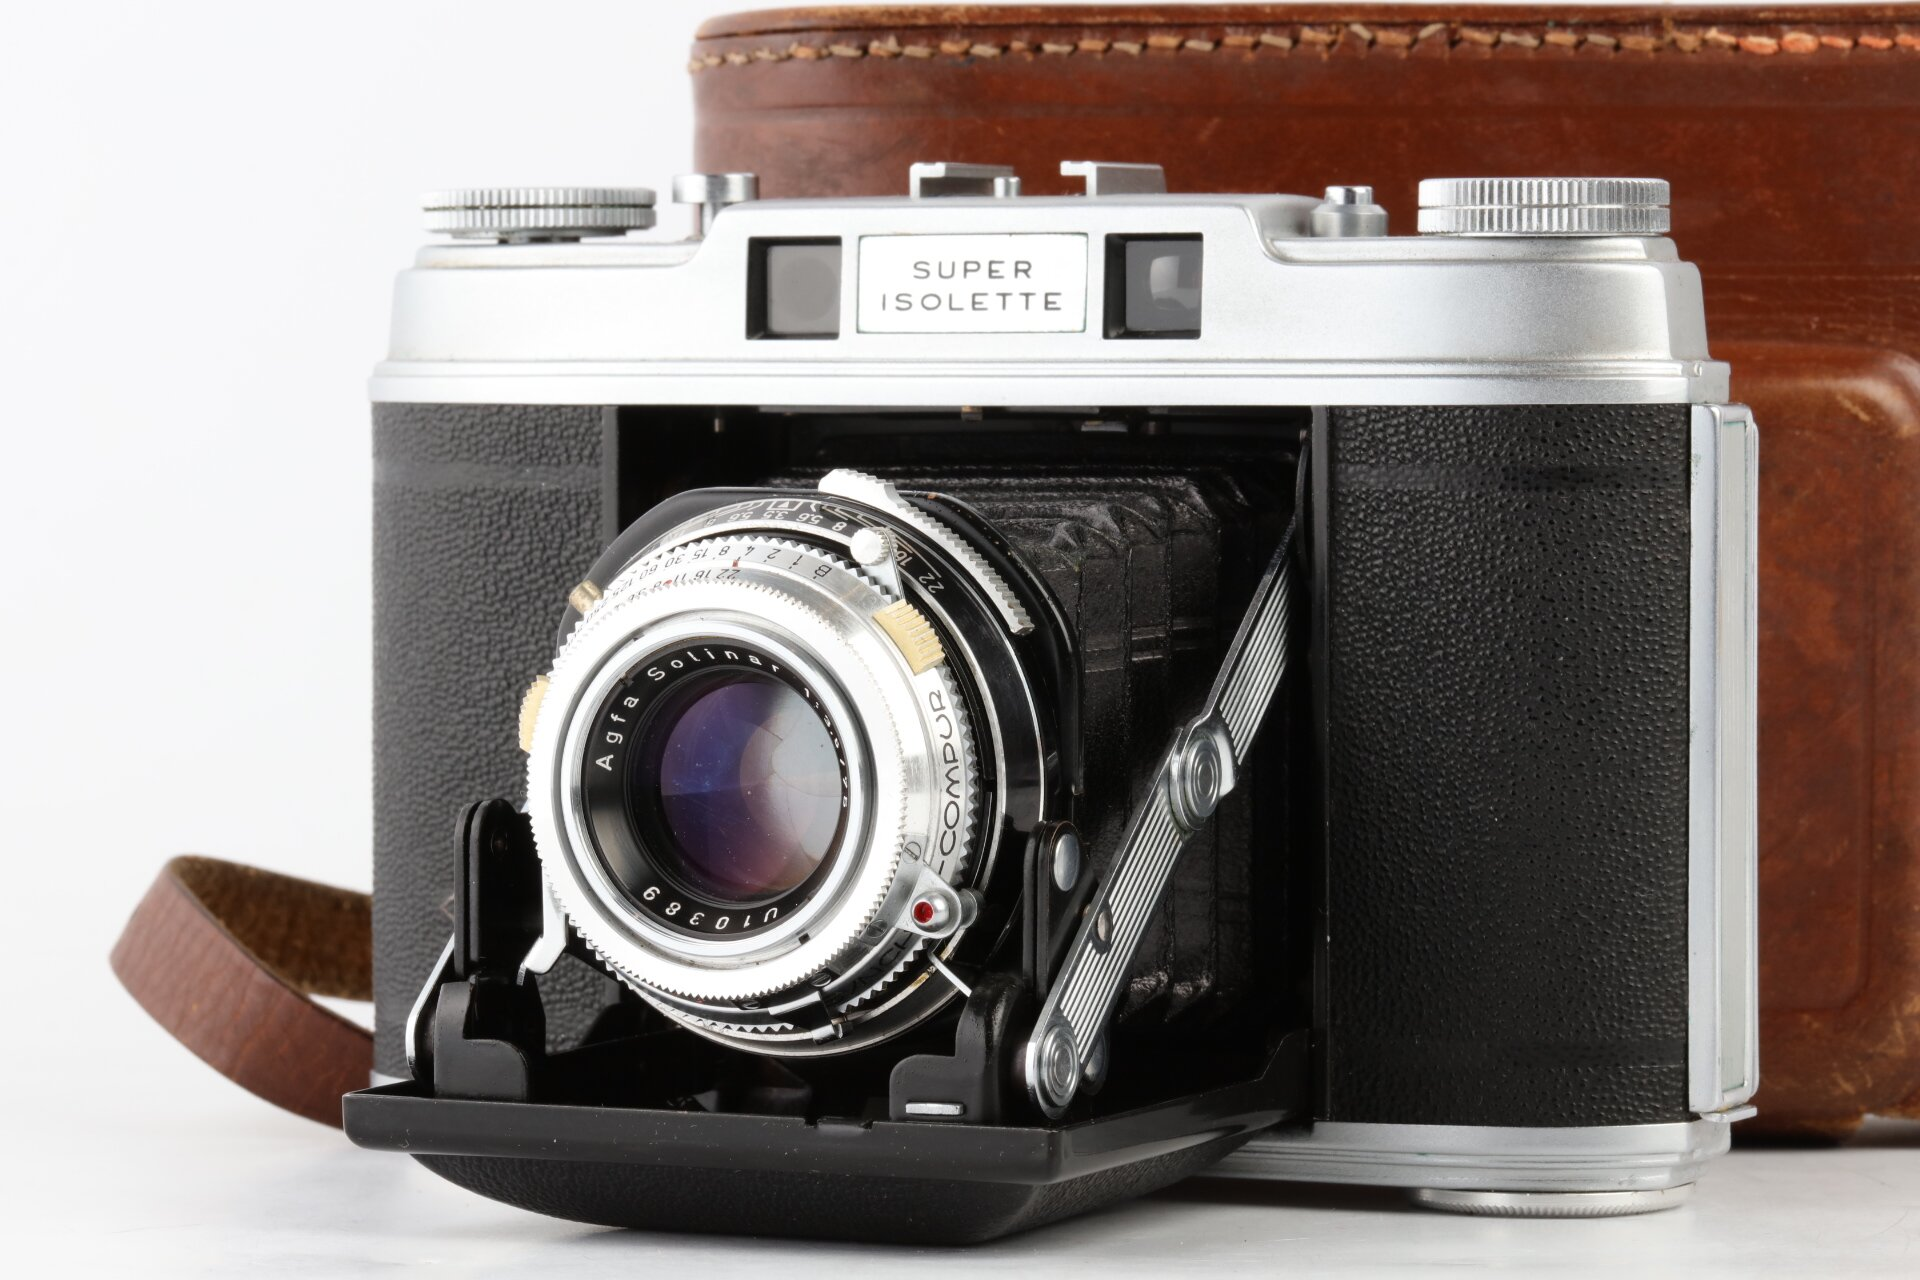 Agfa Solinar Super Isolette